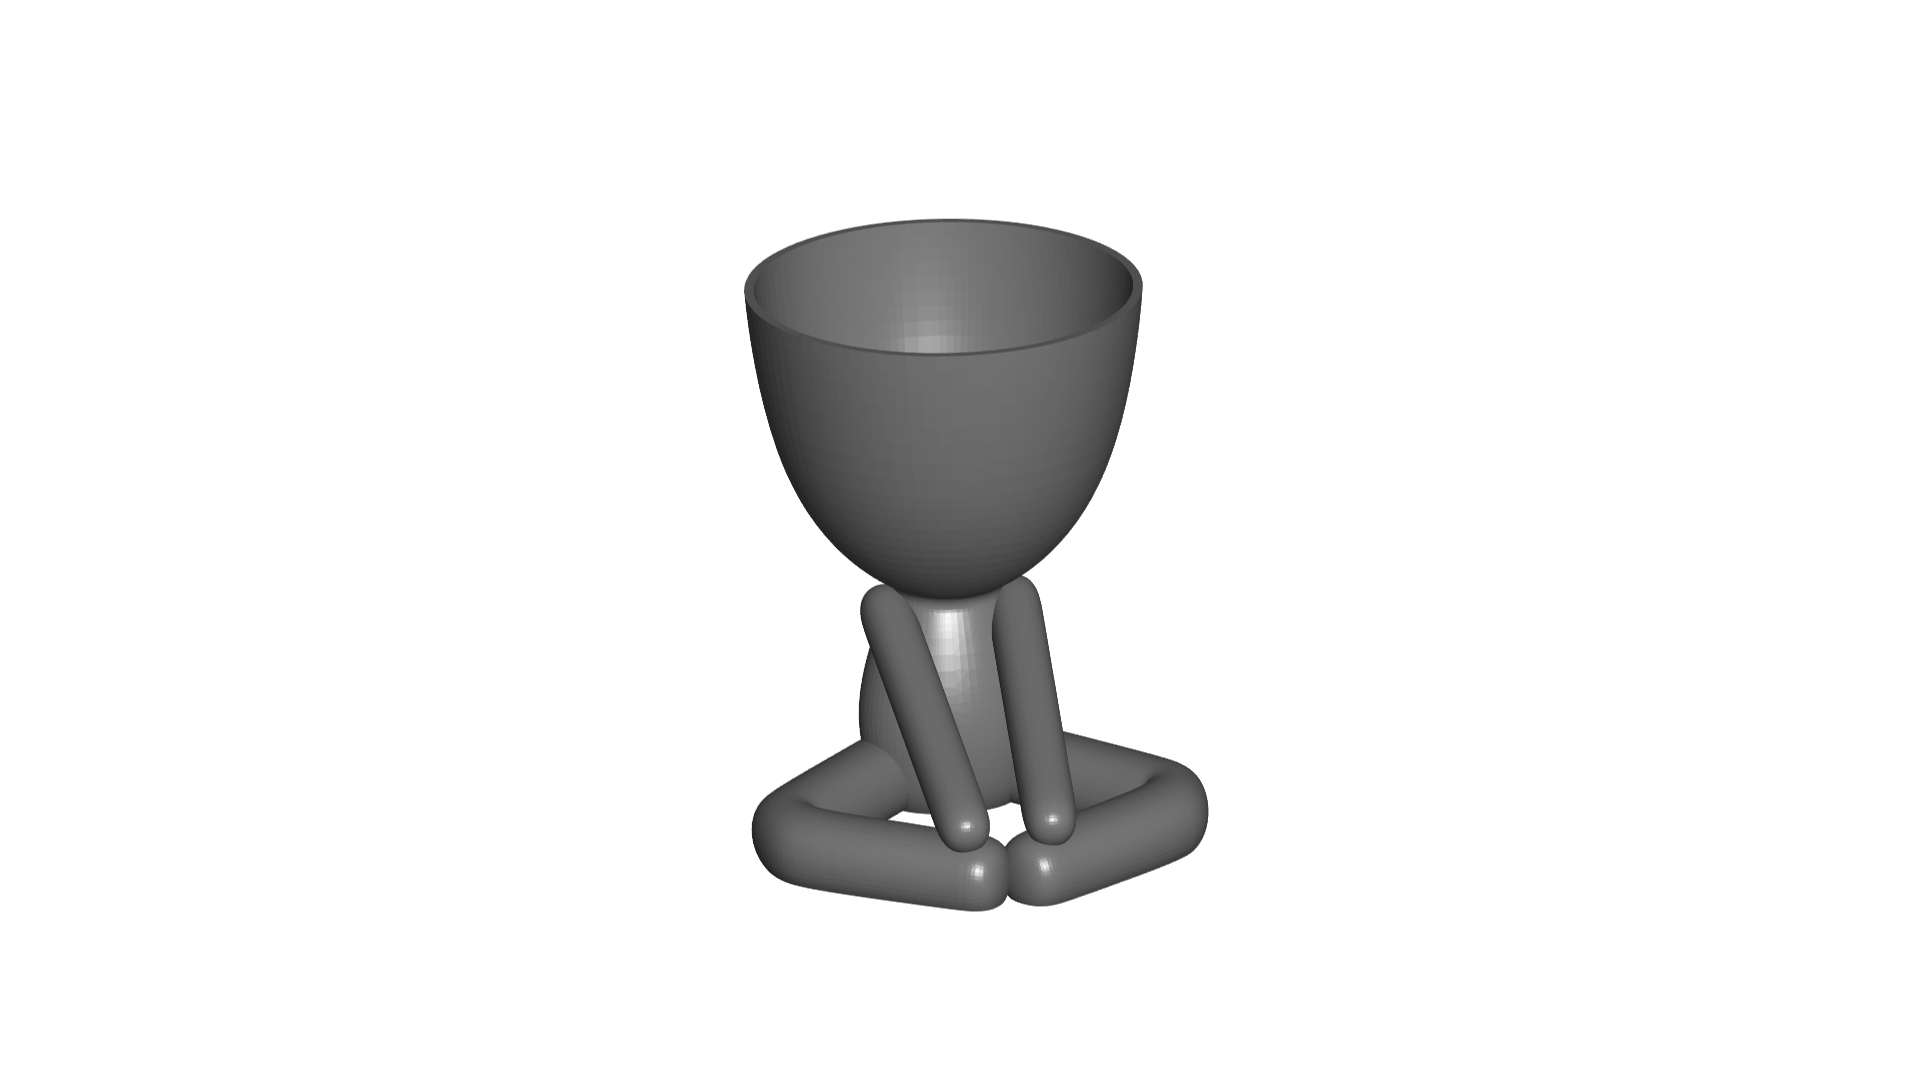 Vaso_12_Gris_1.jpg Download free STL file YOGA ESTIRANDO JARRÓN MACETA ROBERT 12 -  YOGA STRETCHING VASE FLOWERPOT ROBERT 12 • Template to 3D print, PRODUSTL56